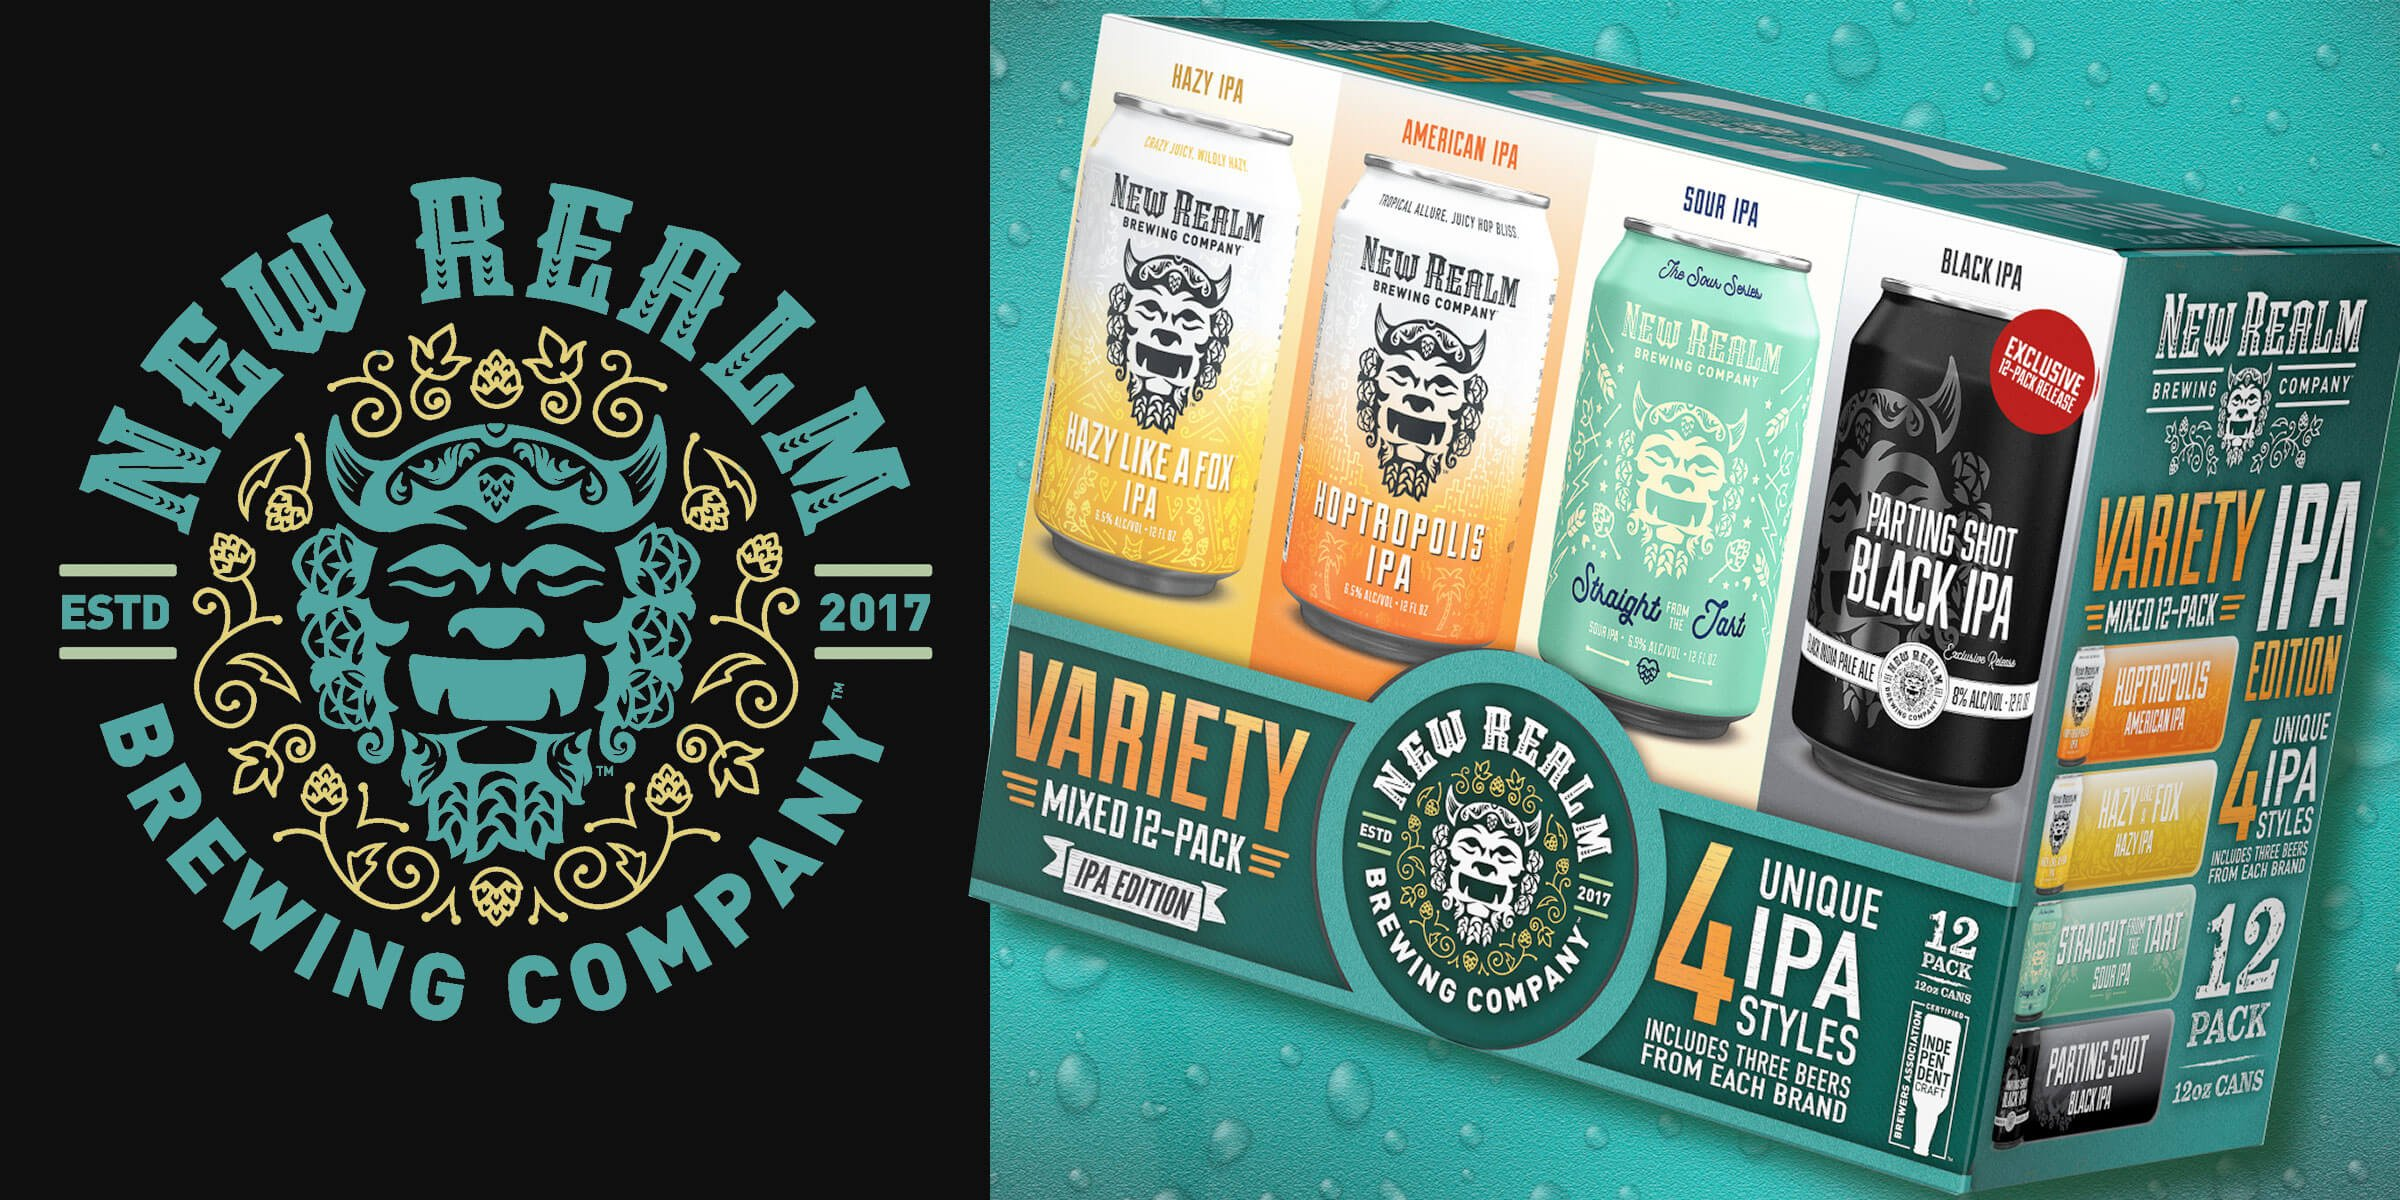 New Realm Brewing Company is introducing its first variety 12 pack — featuring four different IPAs — next month throughout Georgia and most of Virginia.